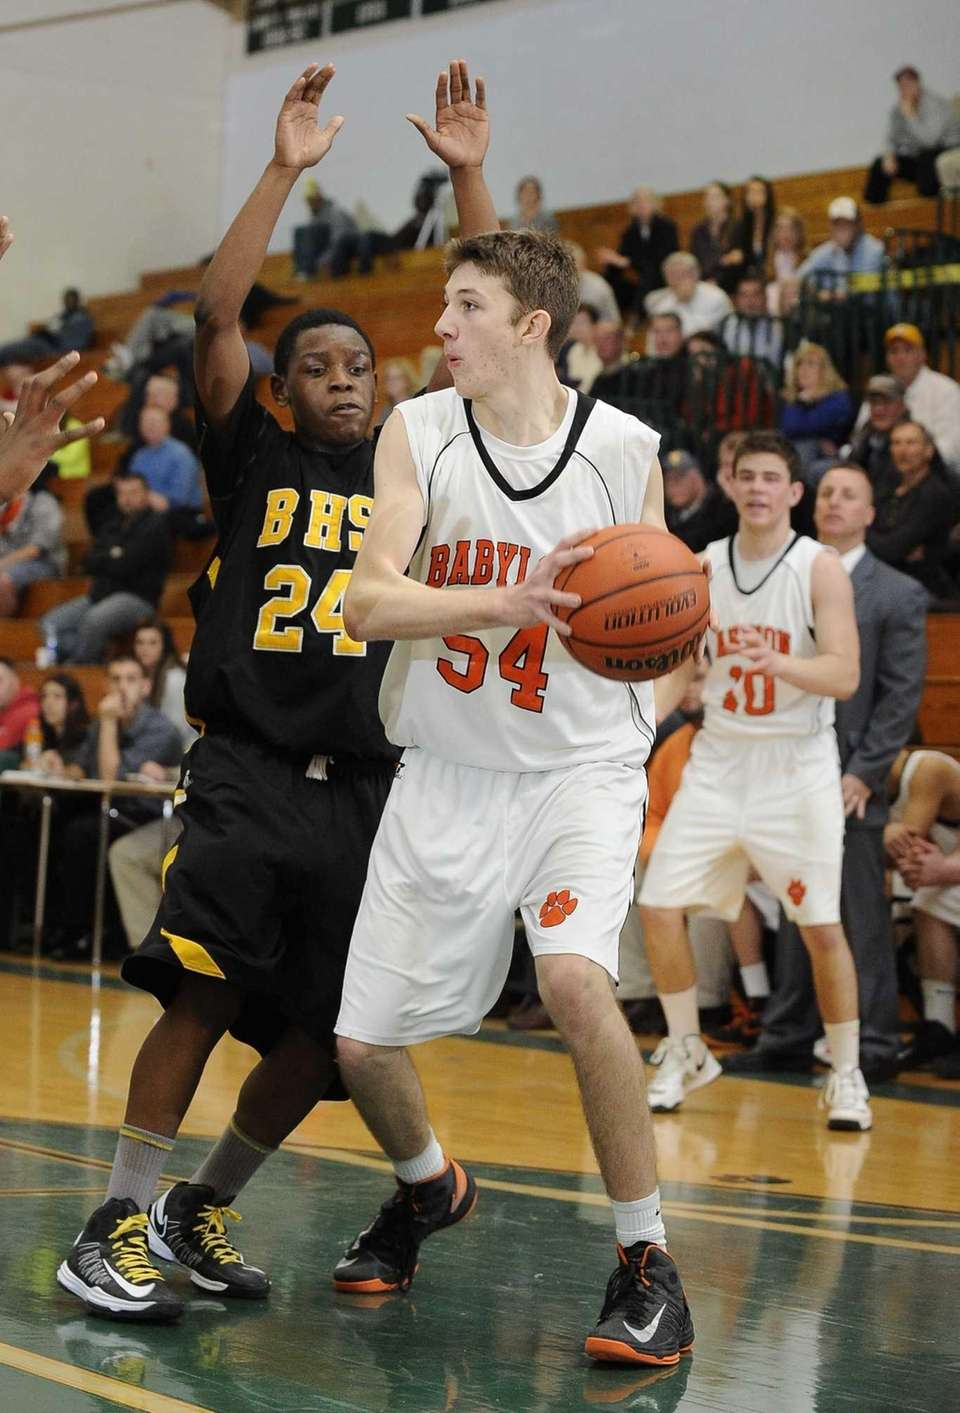 Babylon's Brendan Laing is guarded by Bridgehampton's Anajae